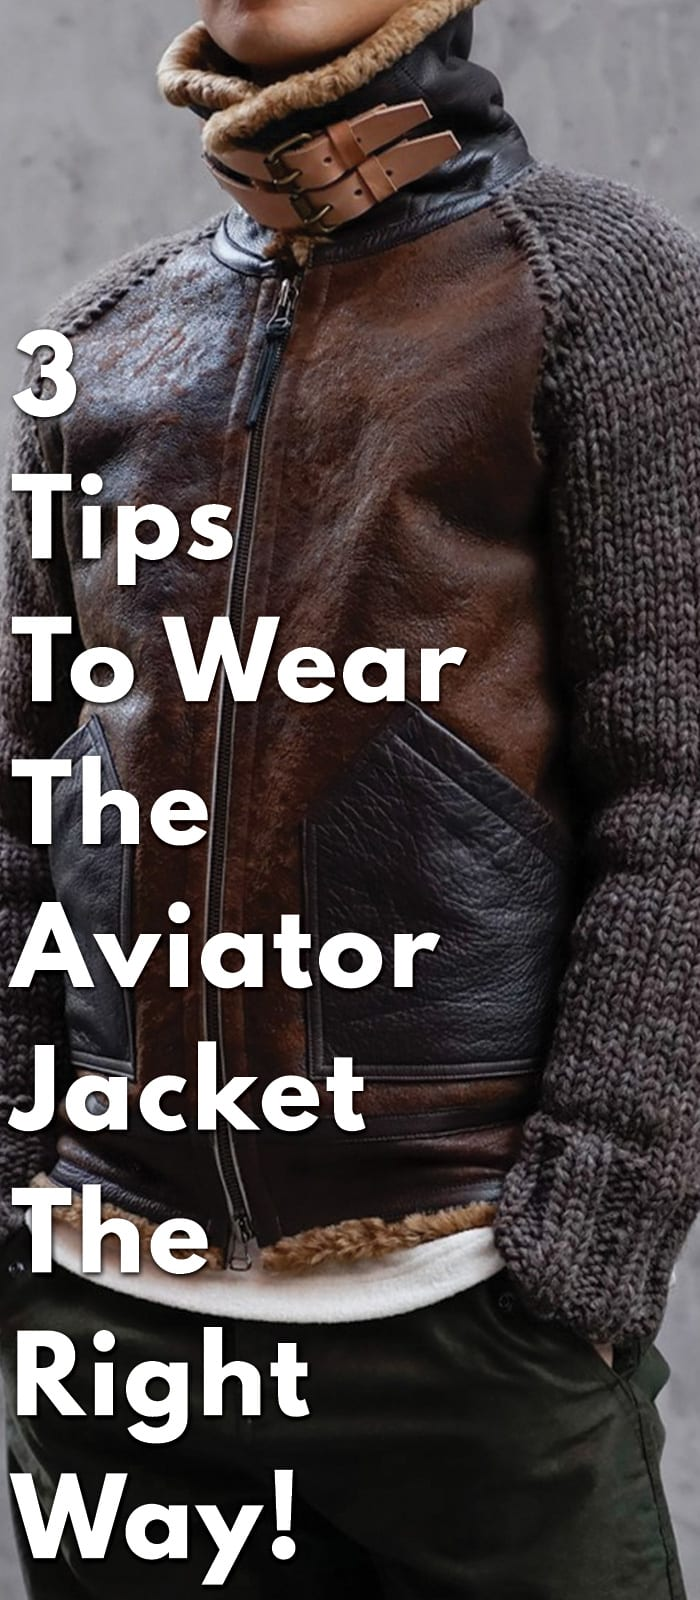 3-Tips-To-Wear-The-Aviator-Jacket-The-Right-Way!